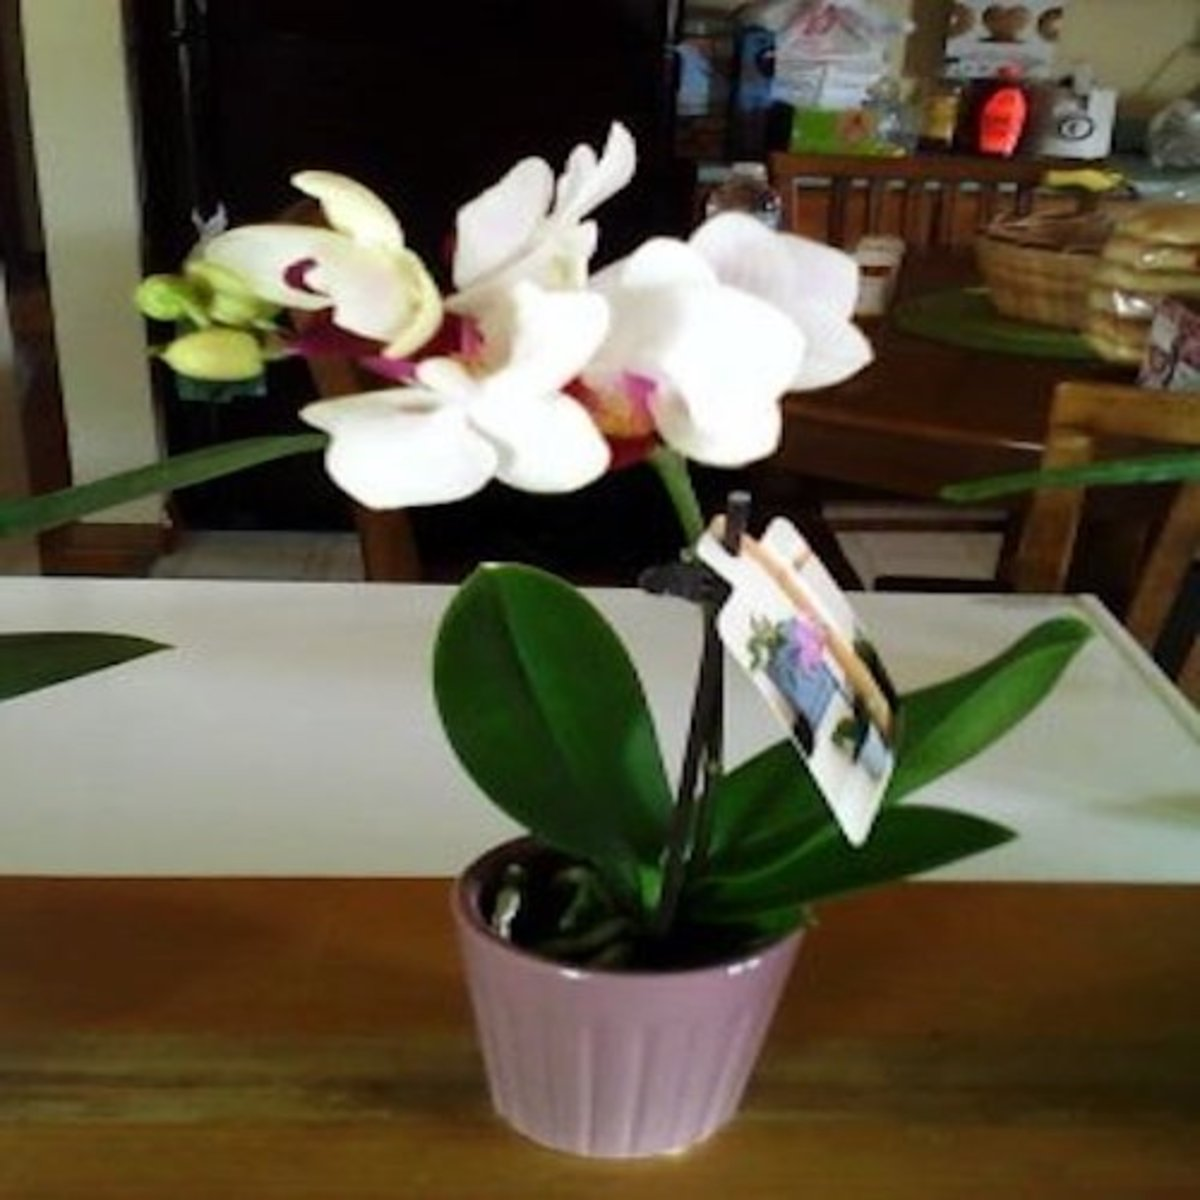 During our grocery shopping at Trader Joe's, one of their sales associates gave me a cut orchid. She saw I was carrying my chemo pump, and she wanted to make me feel good! What a thoughtful act of kindness!